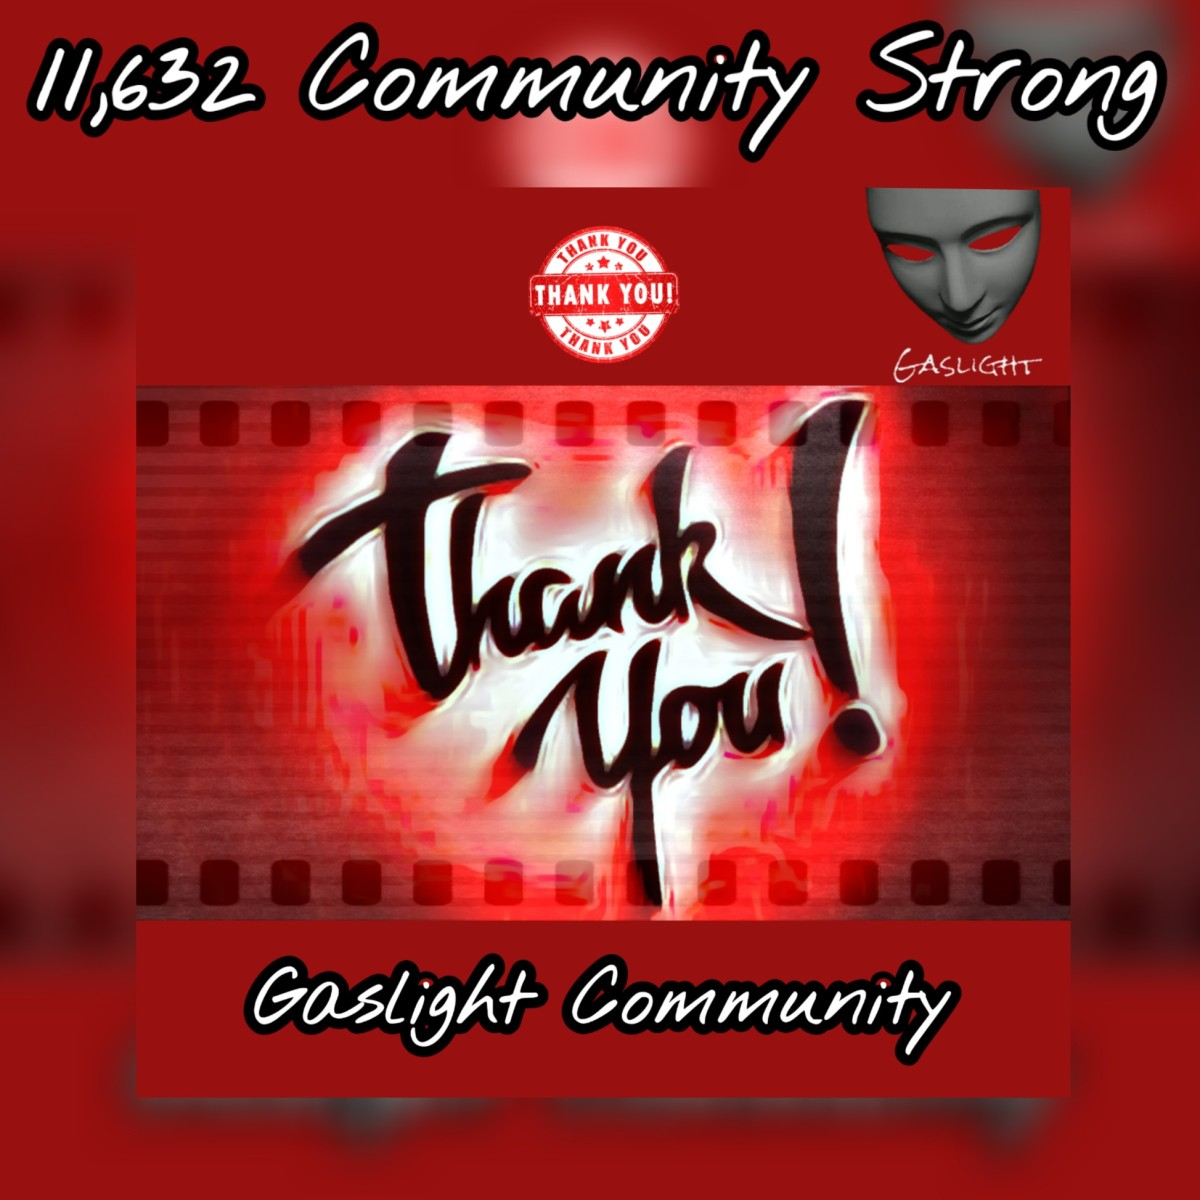 Thank You Facebook & The Gaslight CommunityPage